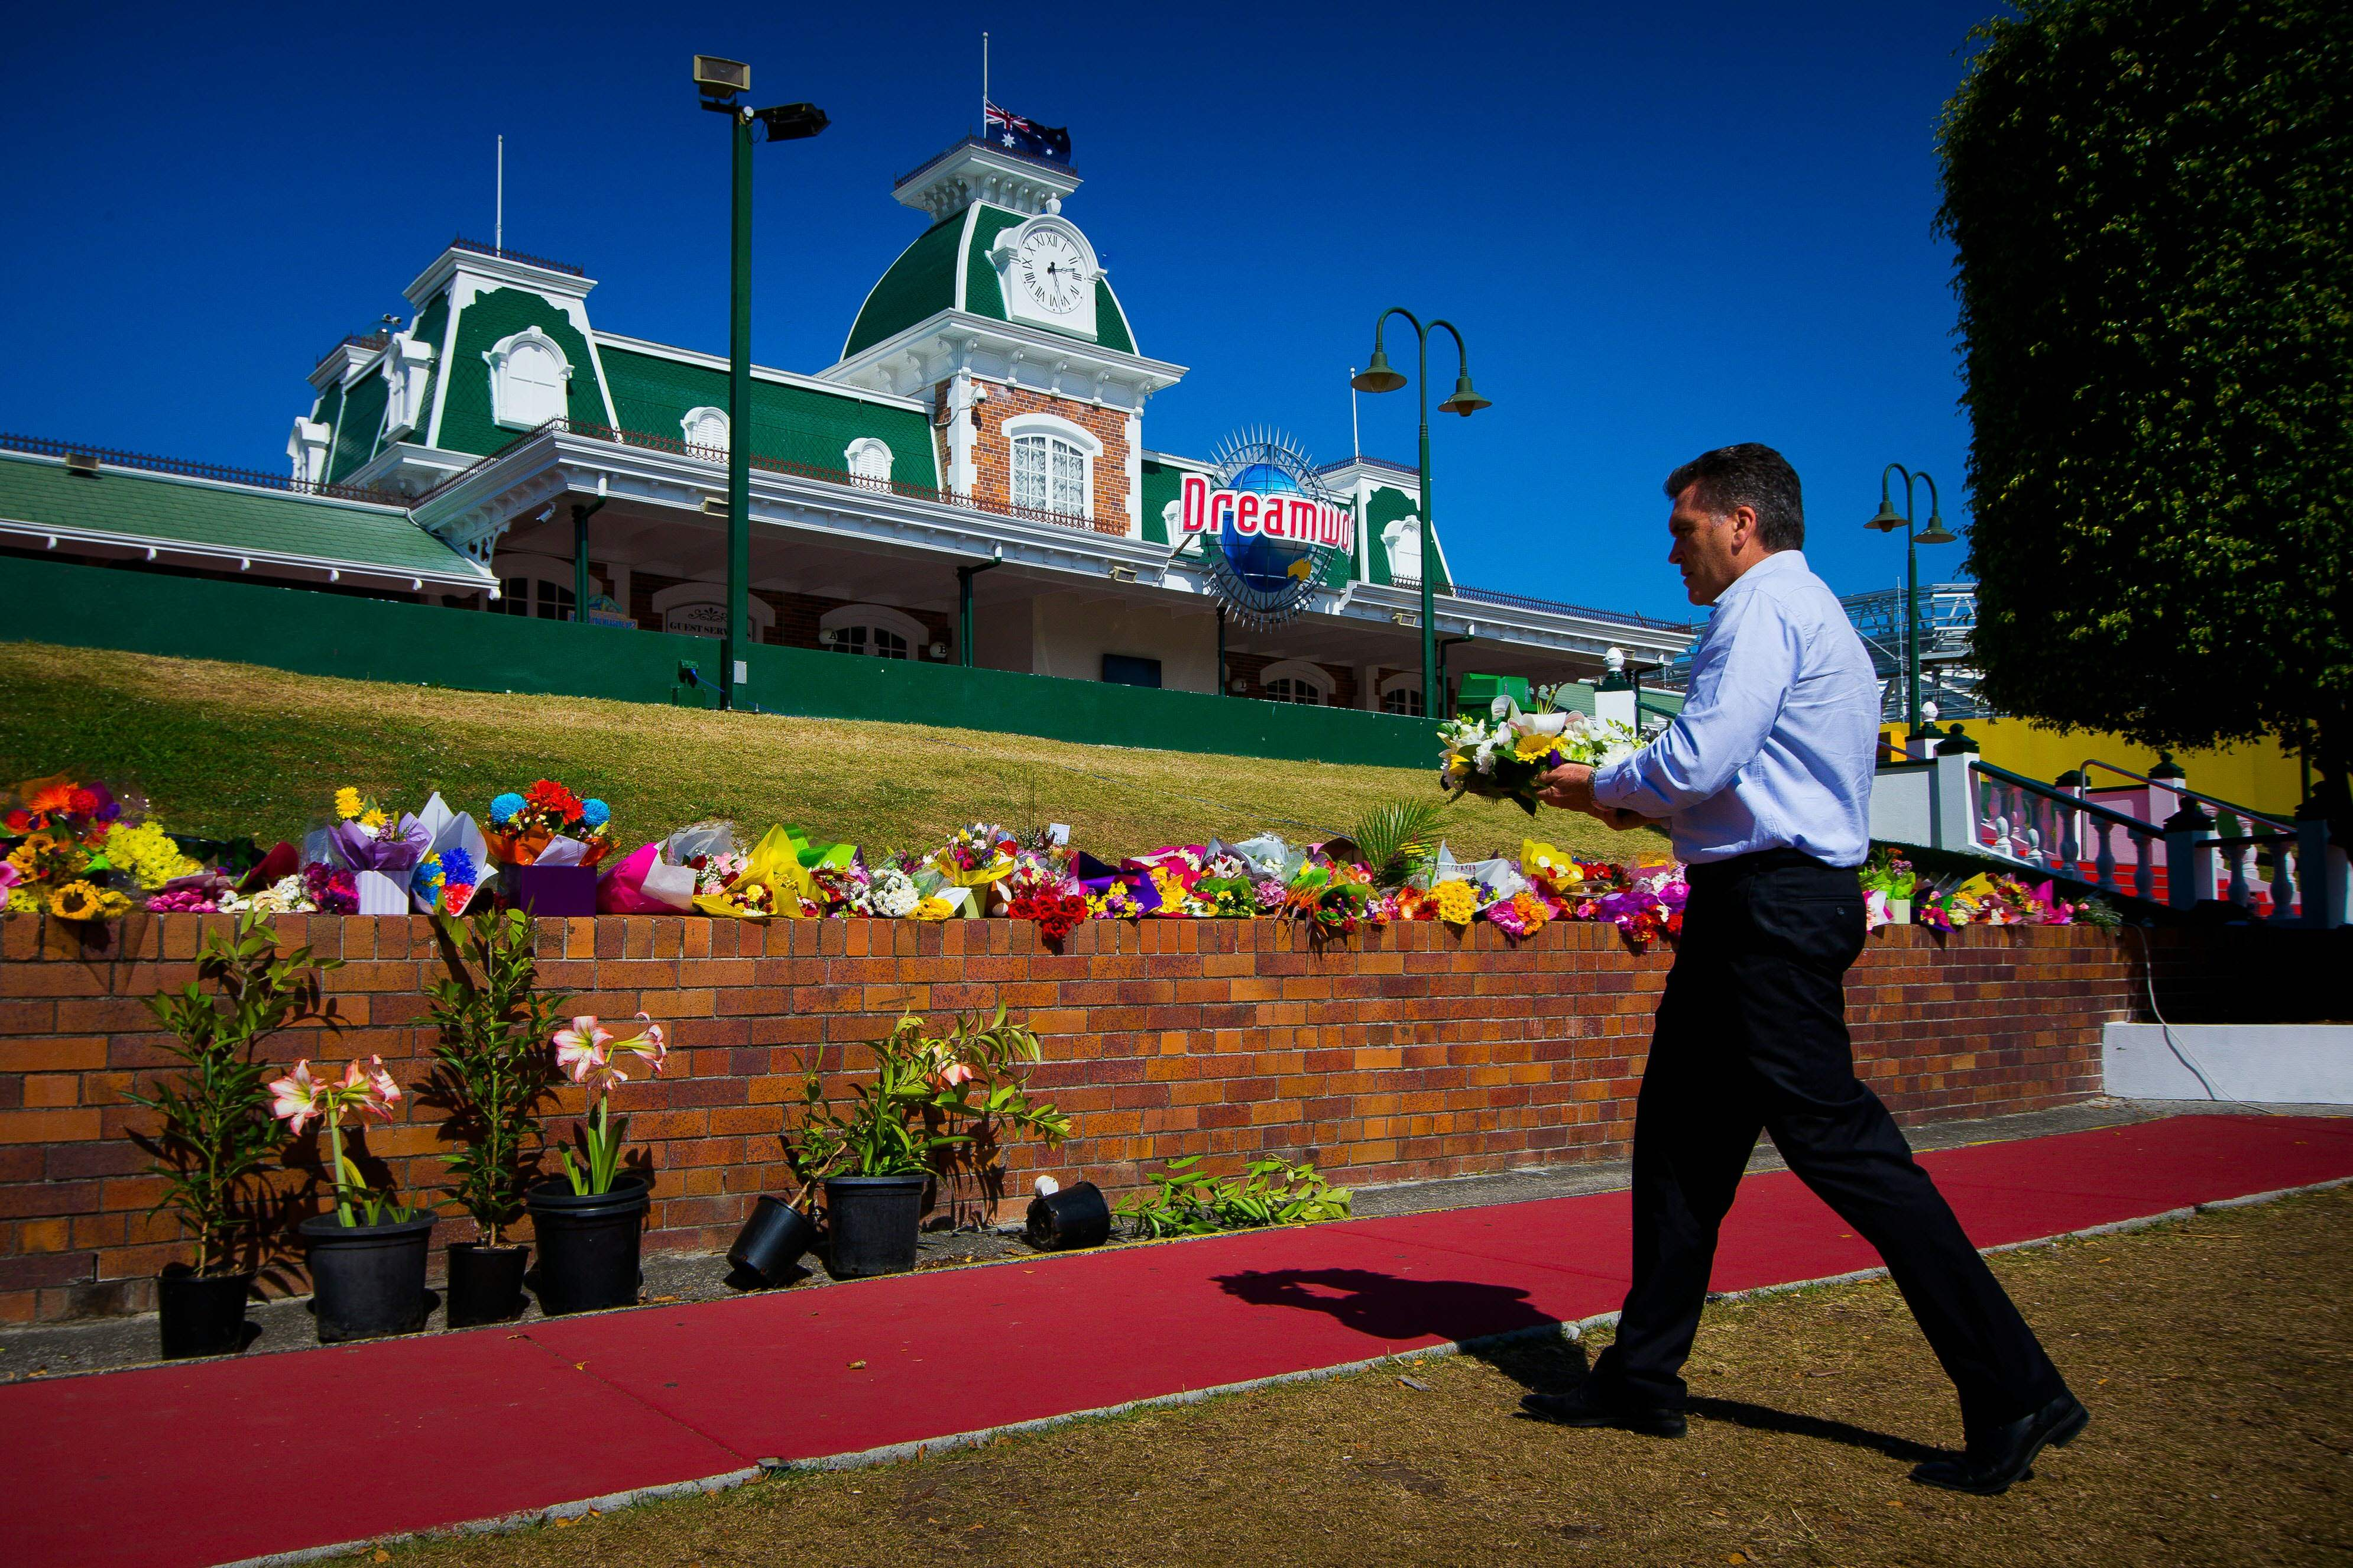 Australia's Dreamworld theme park reopens after fatal ride accident